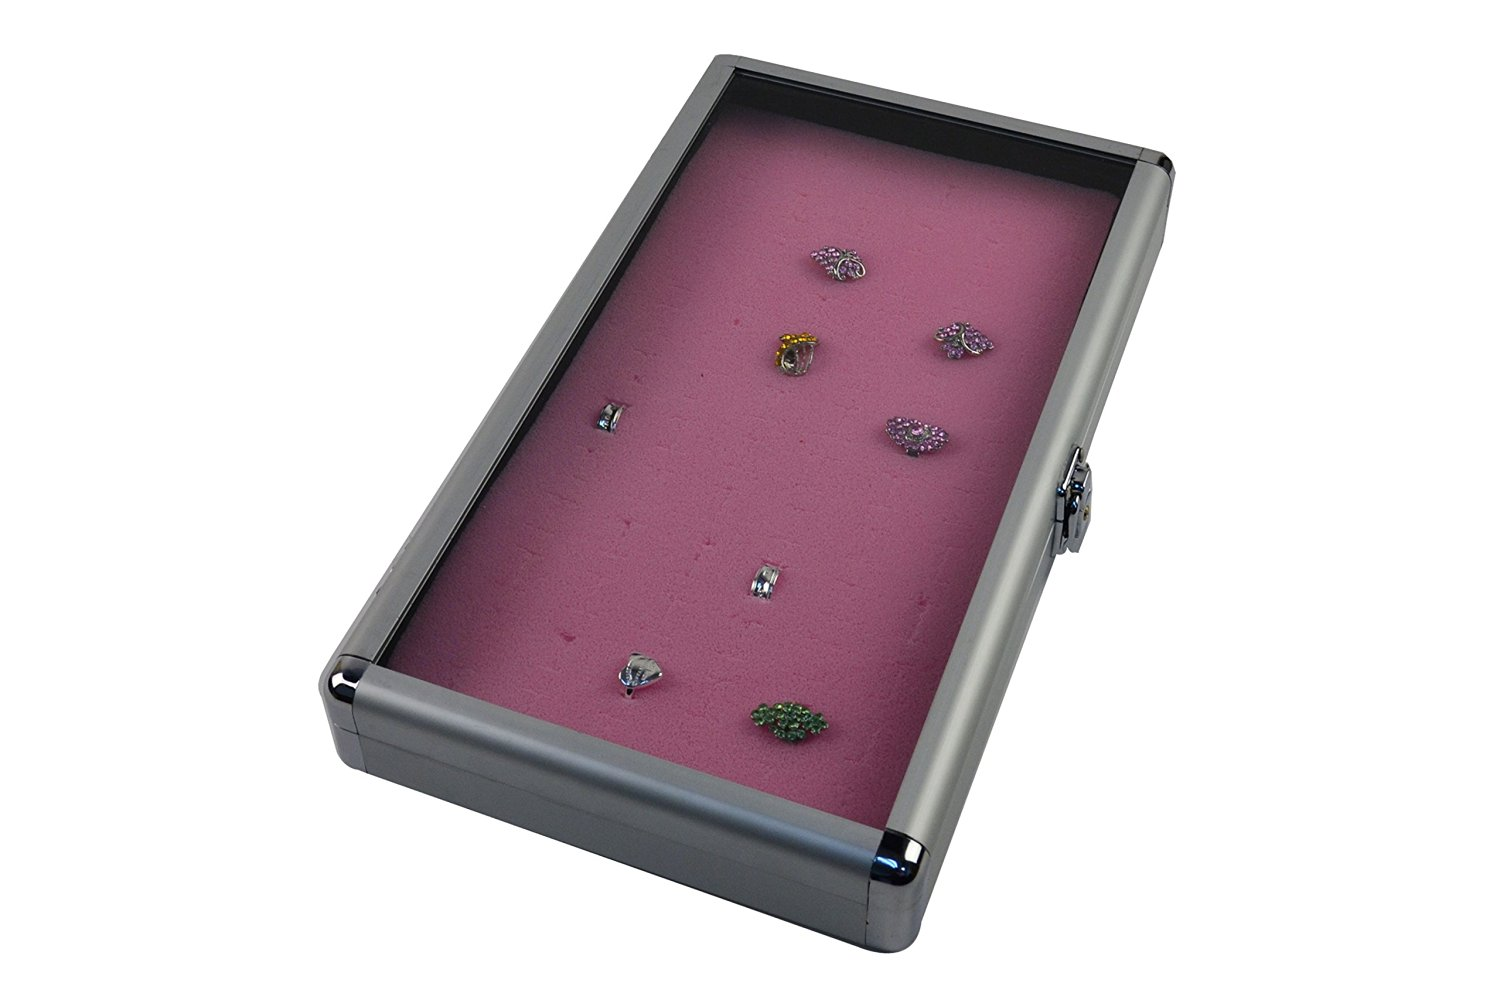 """Regal Pak ® Silver Color Full Size Aluminum Case W/ Locker And Glass Top 14 3/4"""" X 8 1/4"""" X 2 1/8""""H With Pink Ring Foam (72 Rings) 14 -5/16"""" X 7-25/32"""" X 5/8""""H (Jewelry Not Included)"""